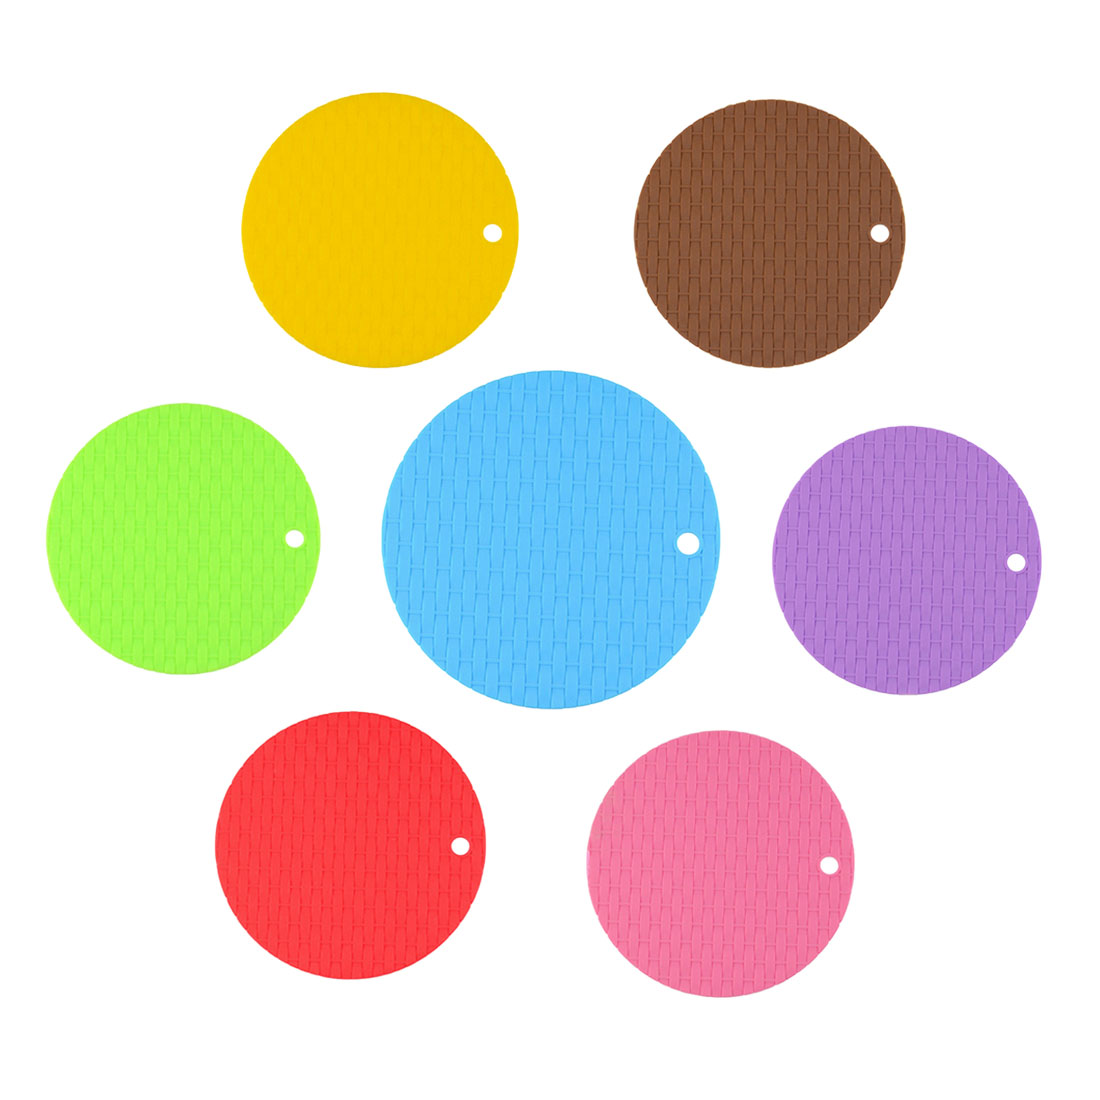 Good Sale 1Pc Round Non-Slip Heat Resistant Mat Coaster Cushion Placemat Pot Holder Silicone Table Mat Kitchen Accessories